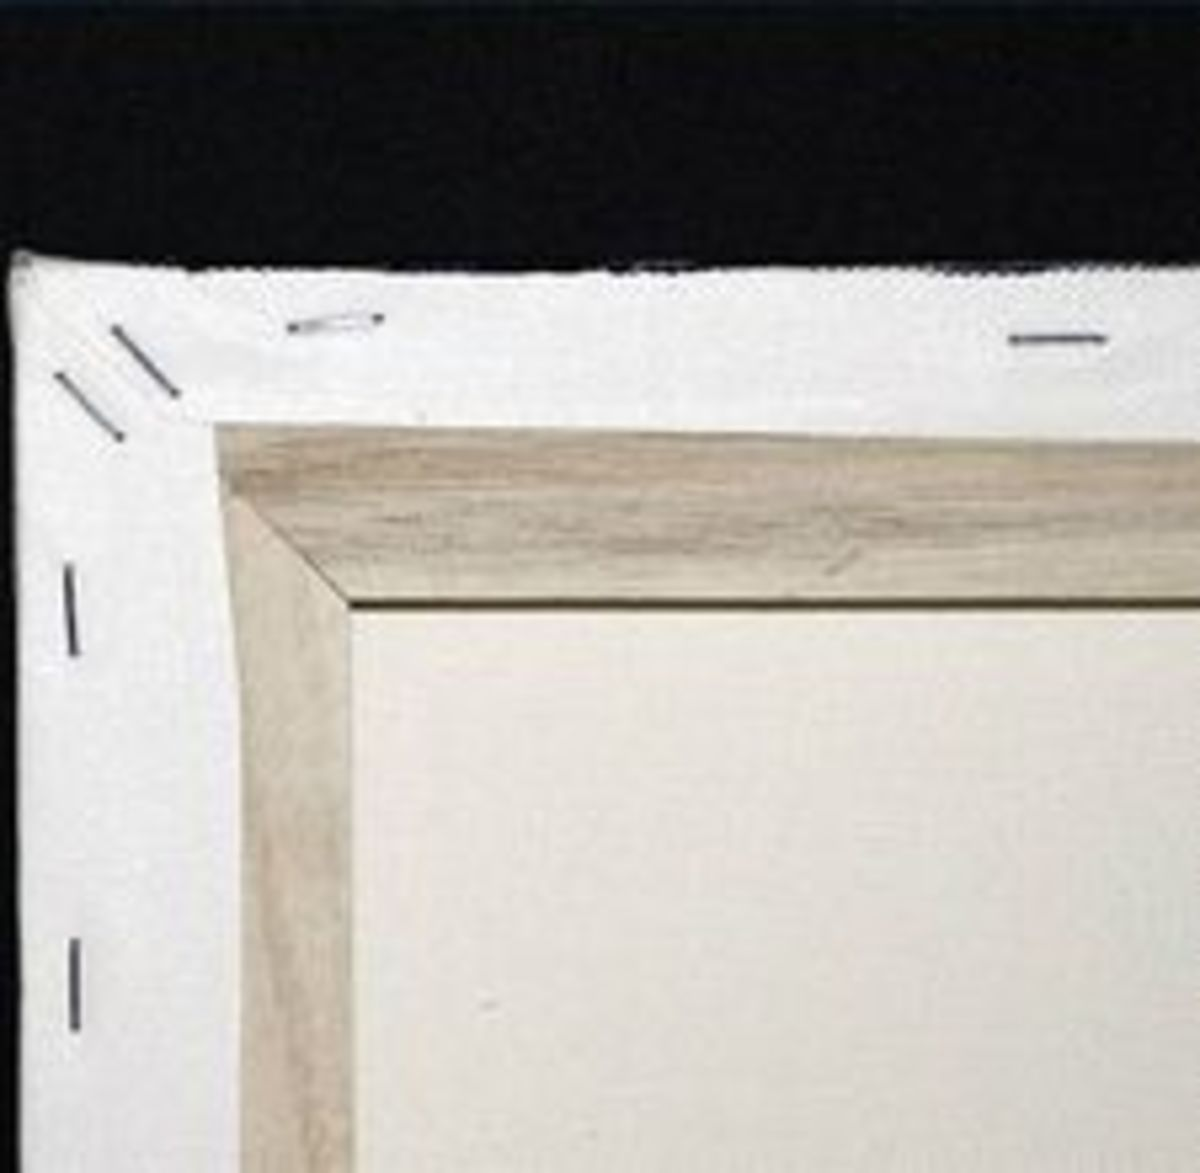 Canvas stretched over a wood frame